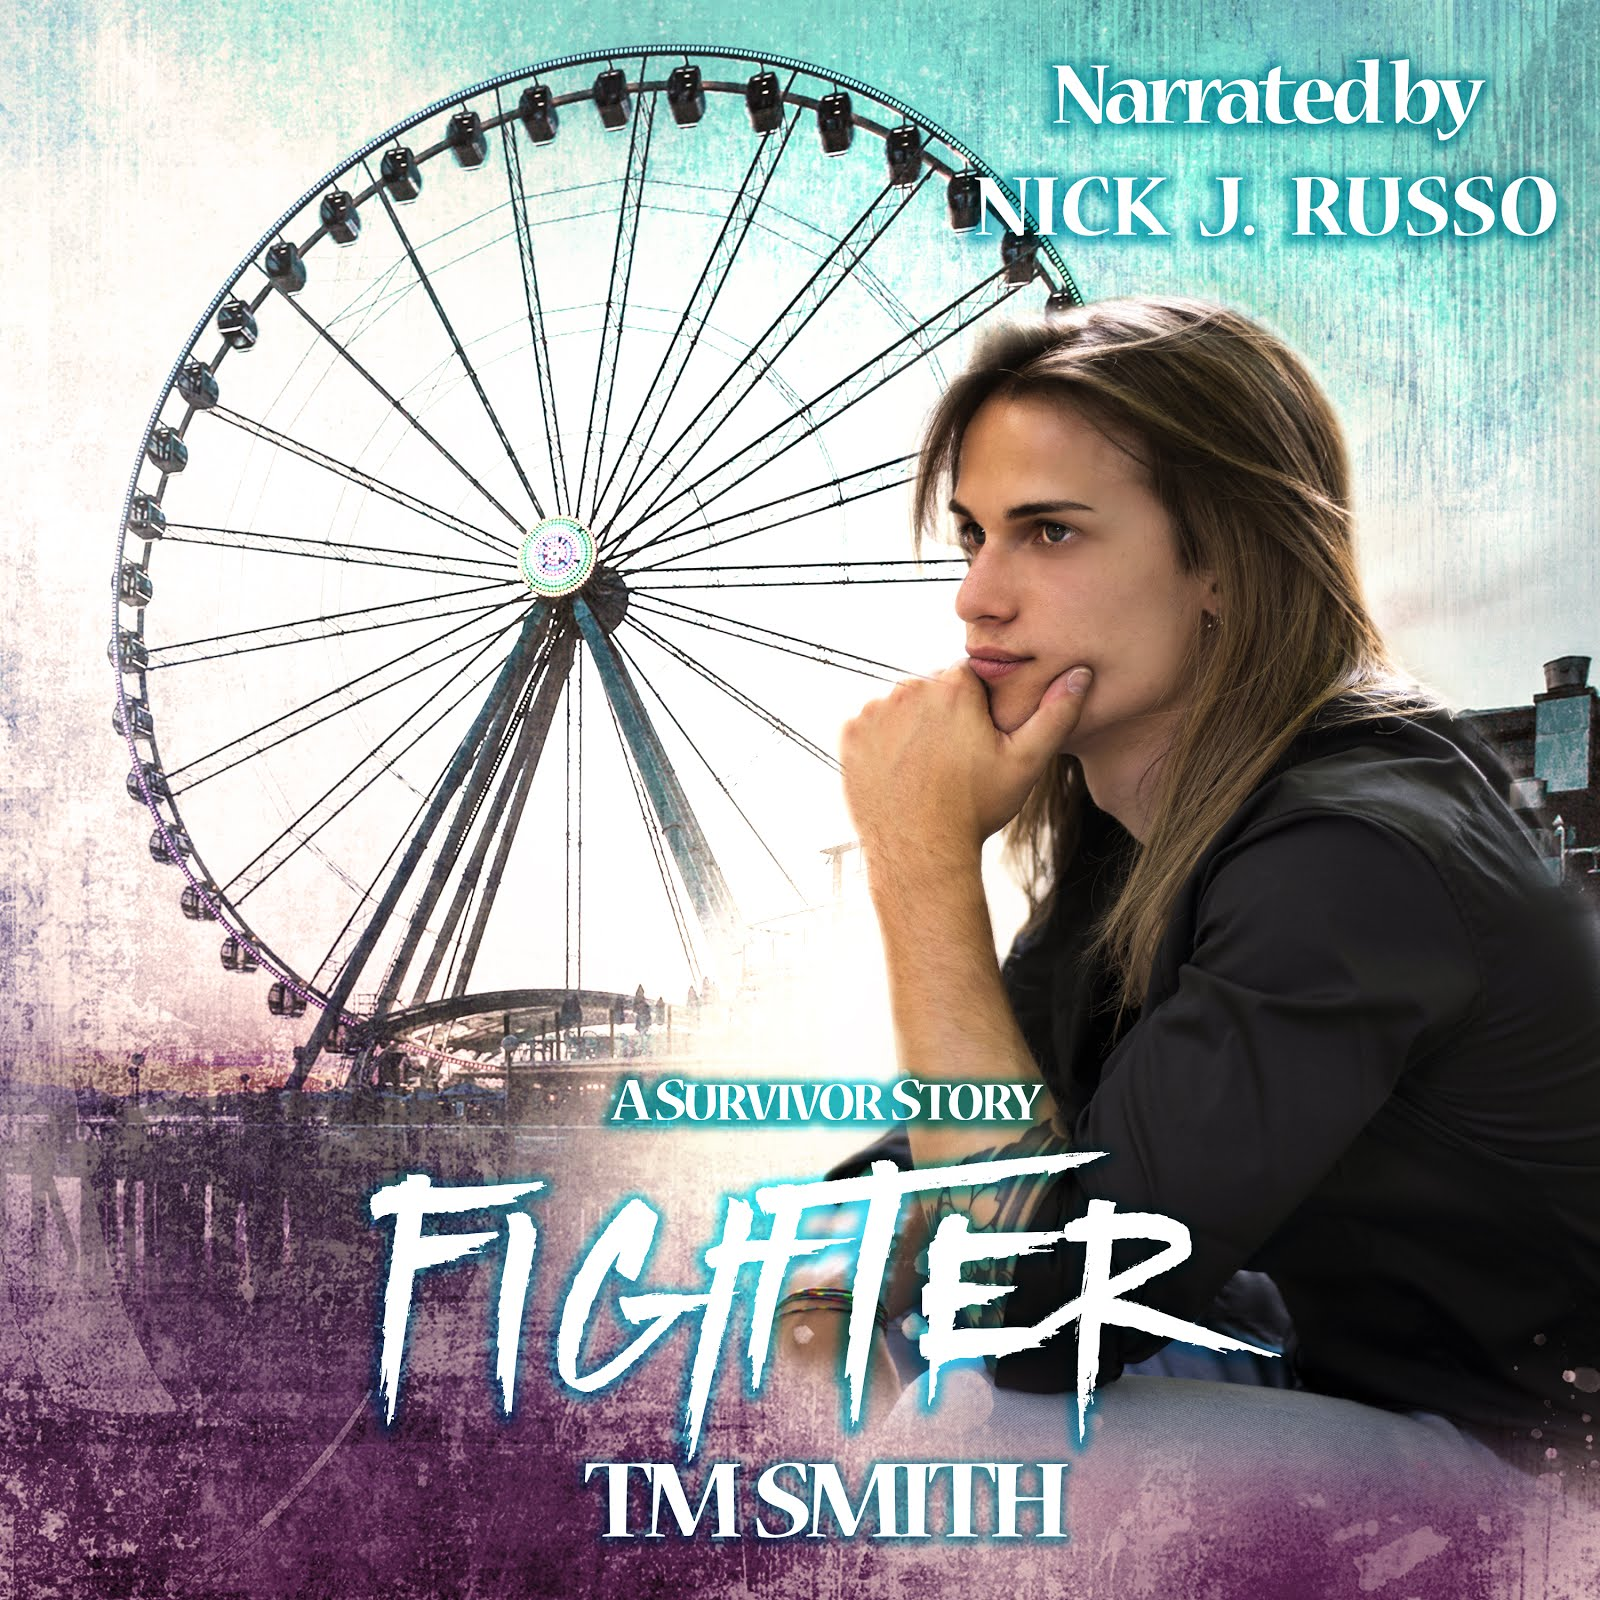 Fighter (Survivor trilogy book 3) by TM Smith available in eBook and from Audible!